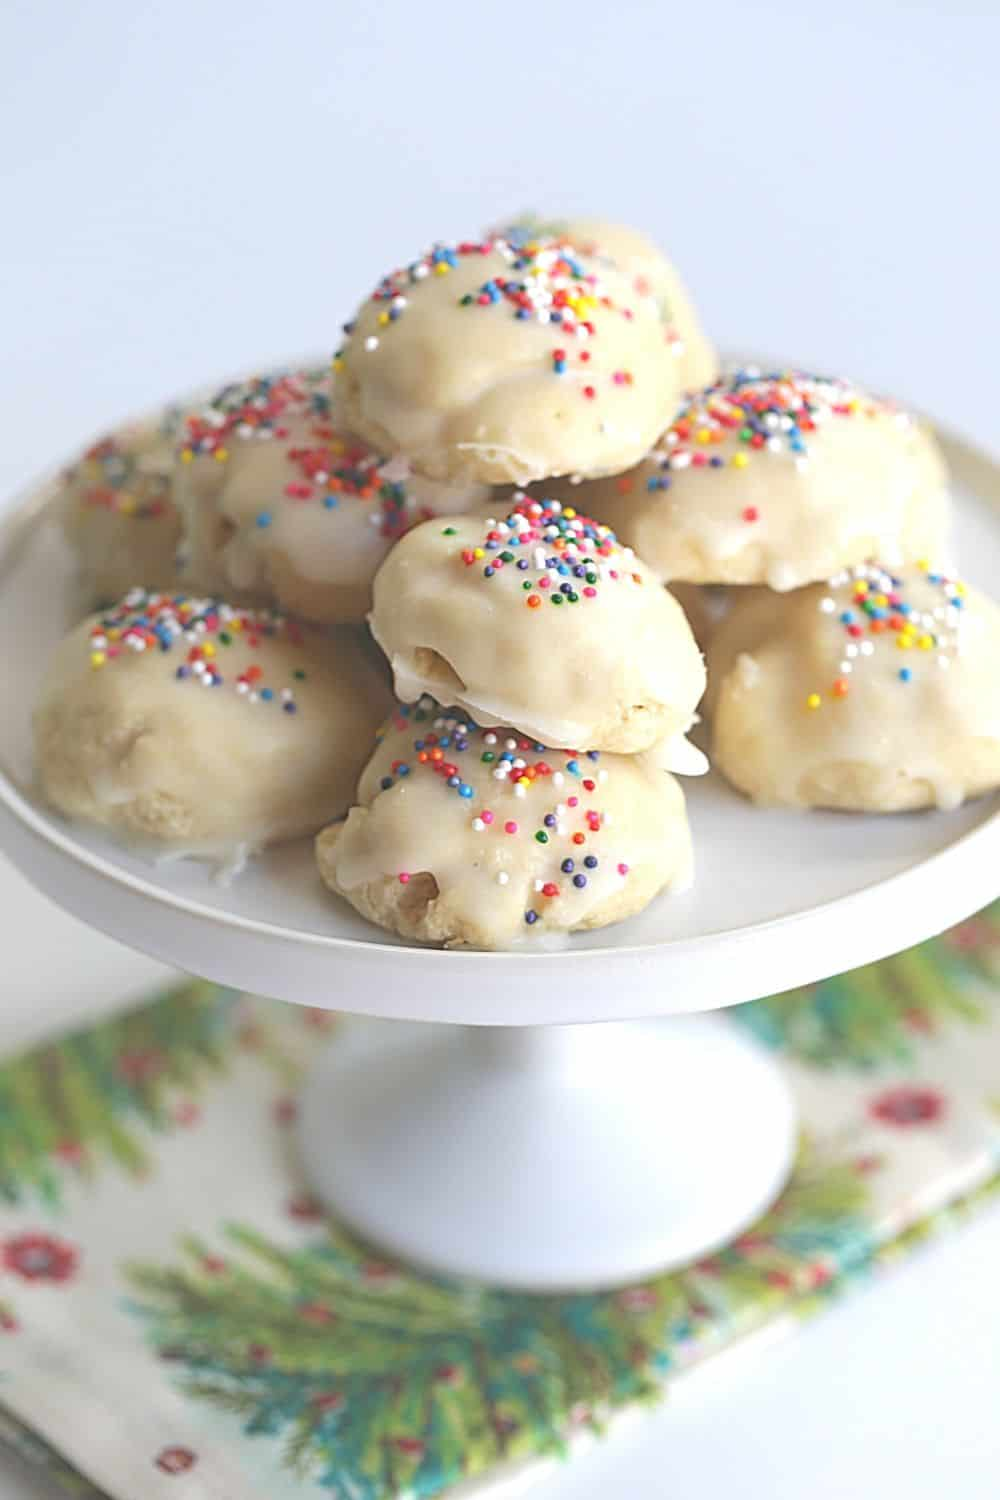 Italian Christmas Cookies are a delicious cake-like cookie with a hint of anise and sweet sugar glaze. This easy cookie recipe is great to serve any time of the year.